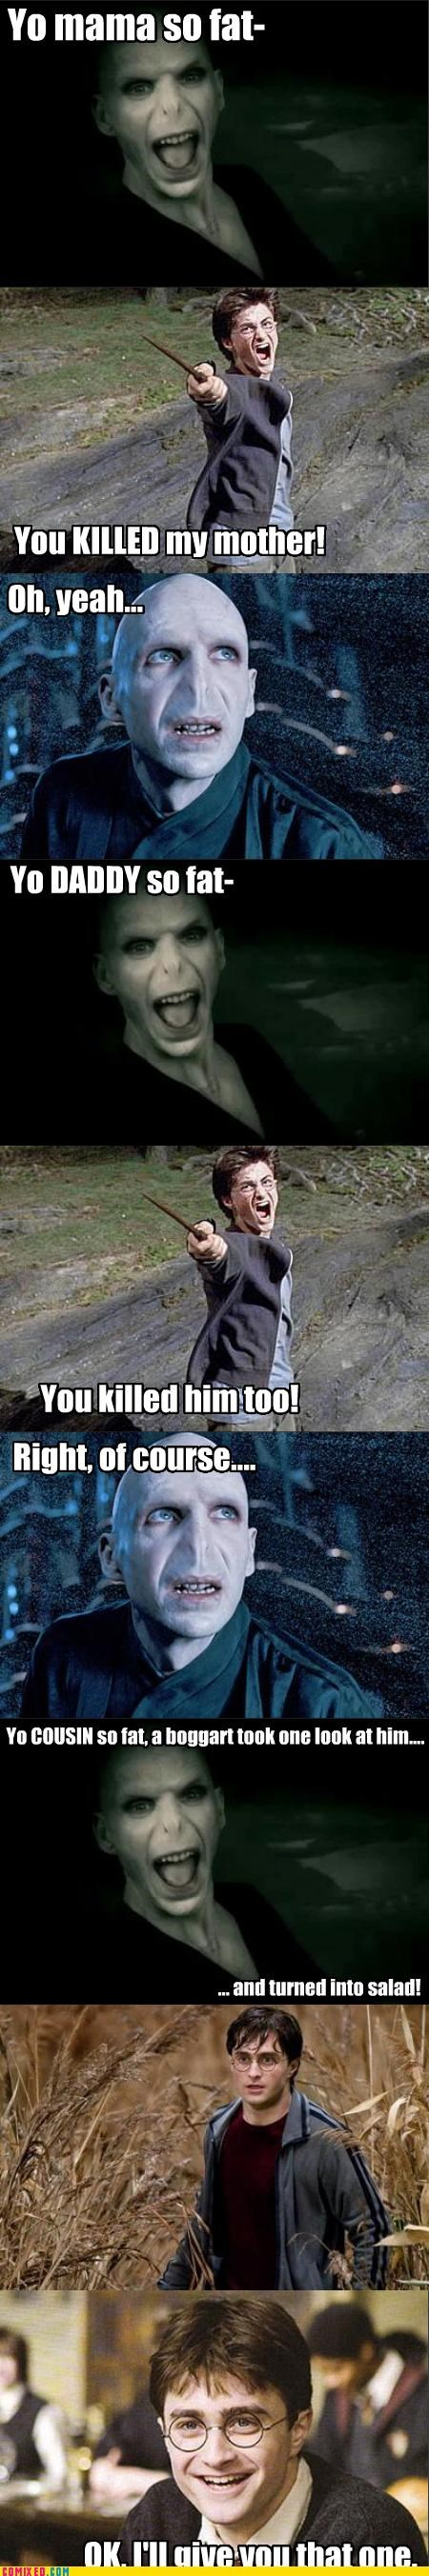 Voldemort Tells a Pretty Good Joke...